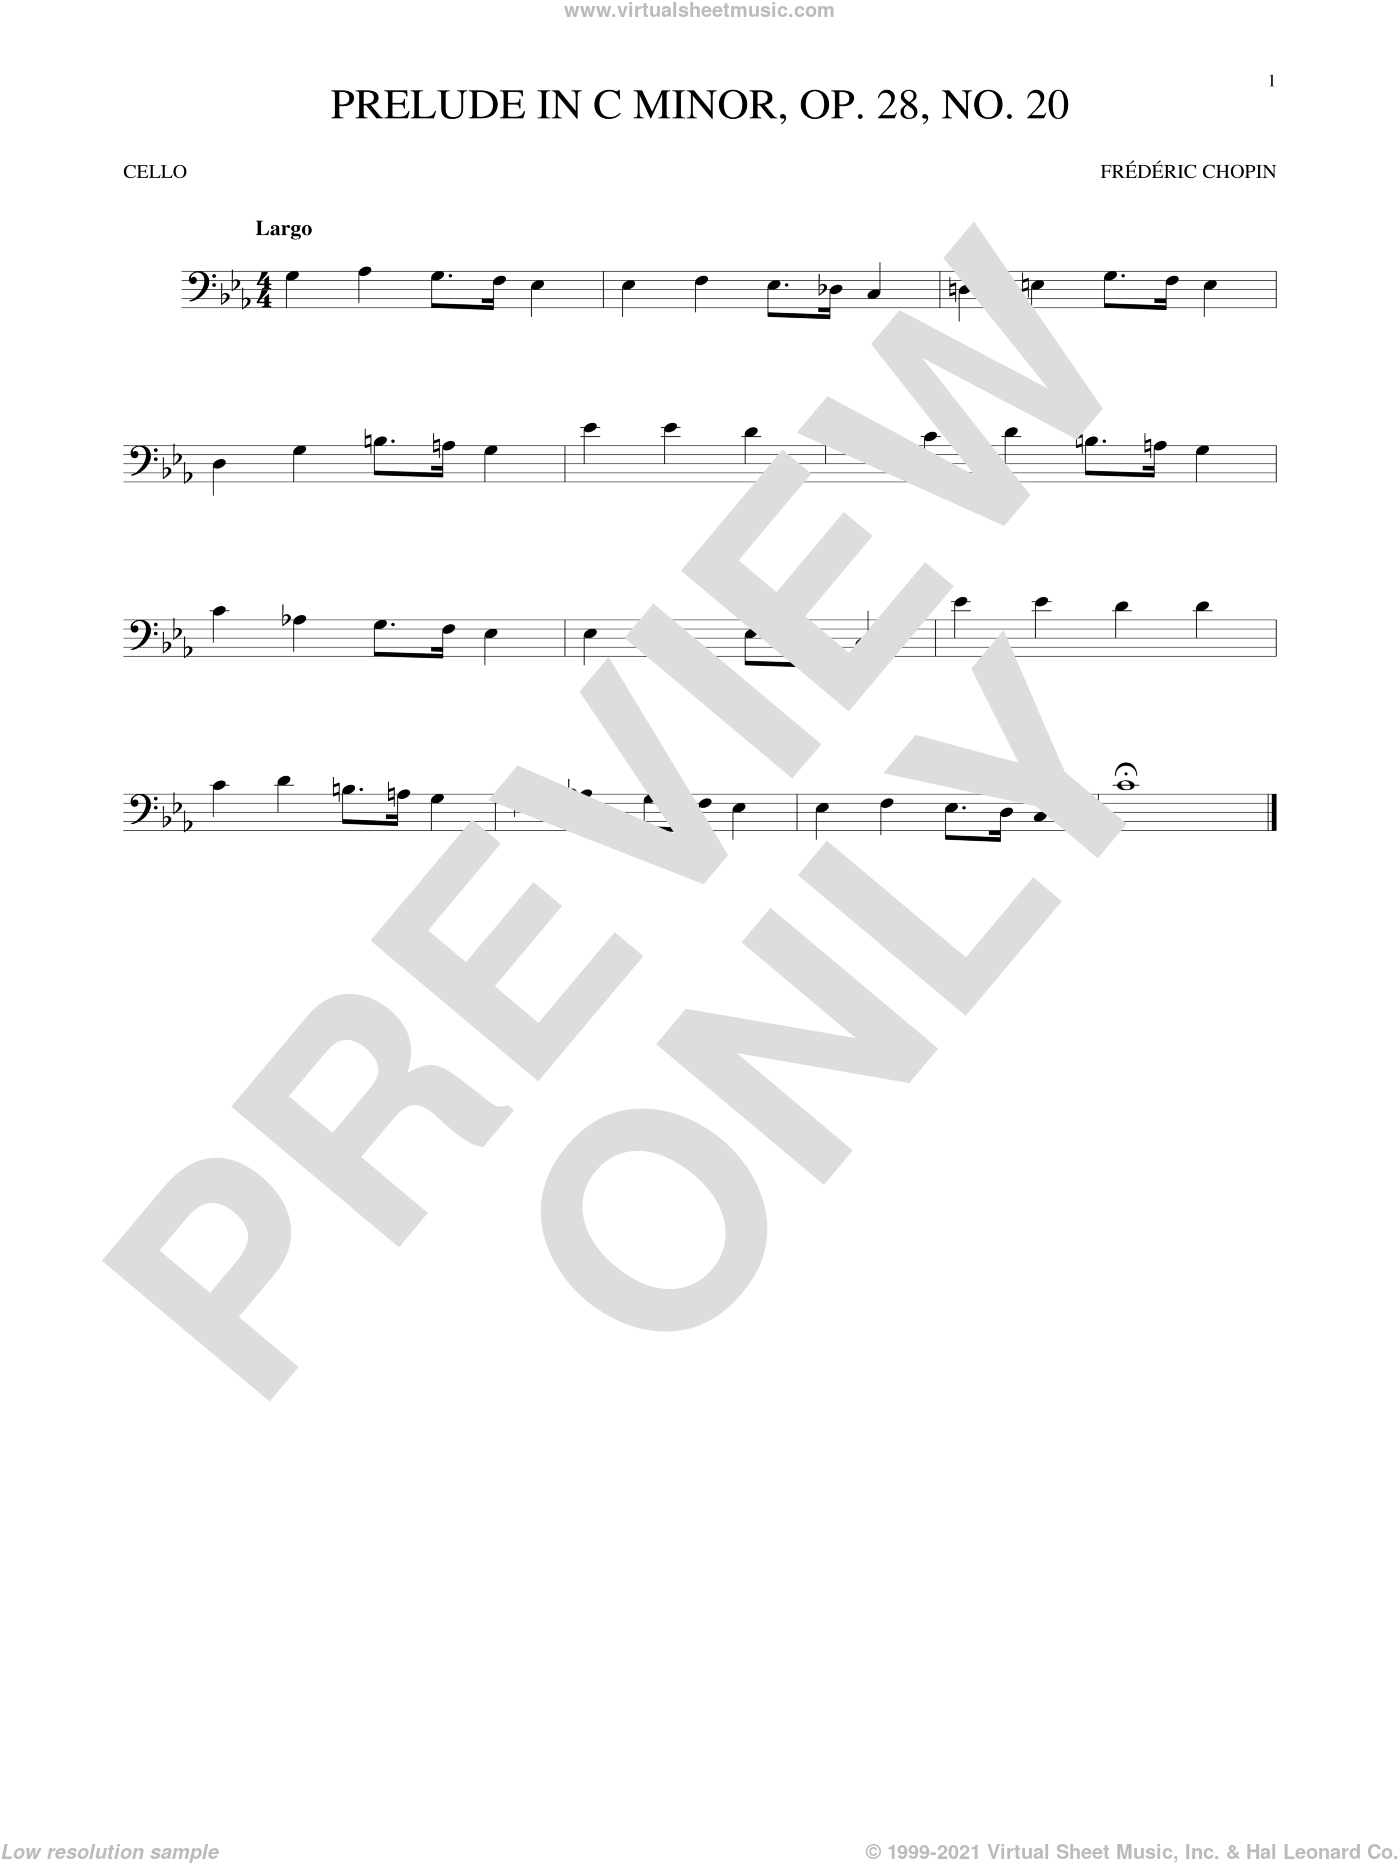 Prelude, Op. 28, No. 20 sheet music for cello solo by Frederic Chopin, classical score, intermediate skill level